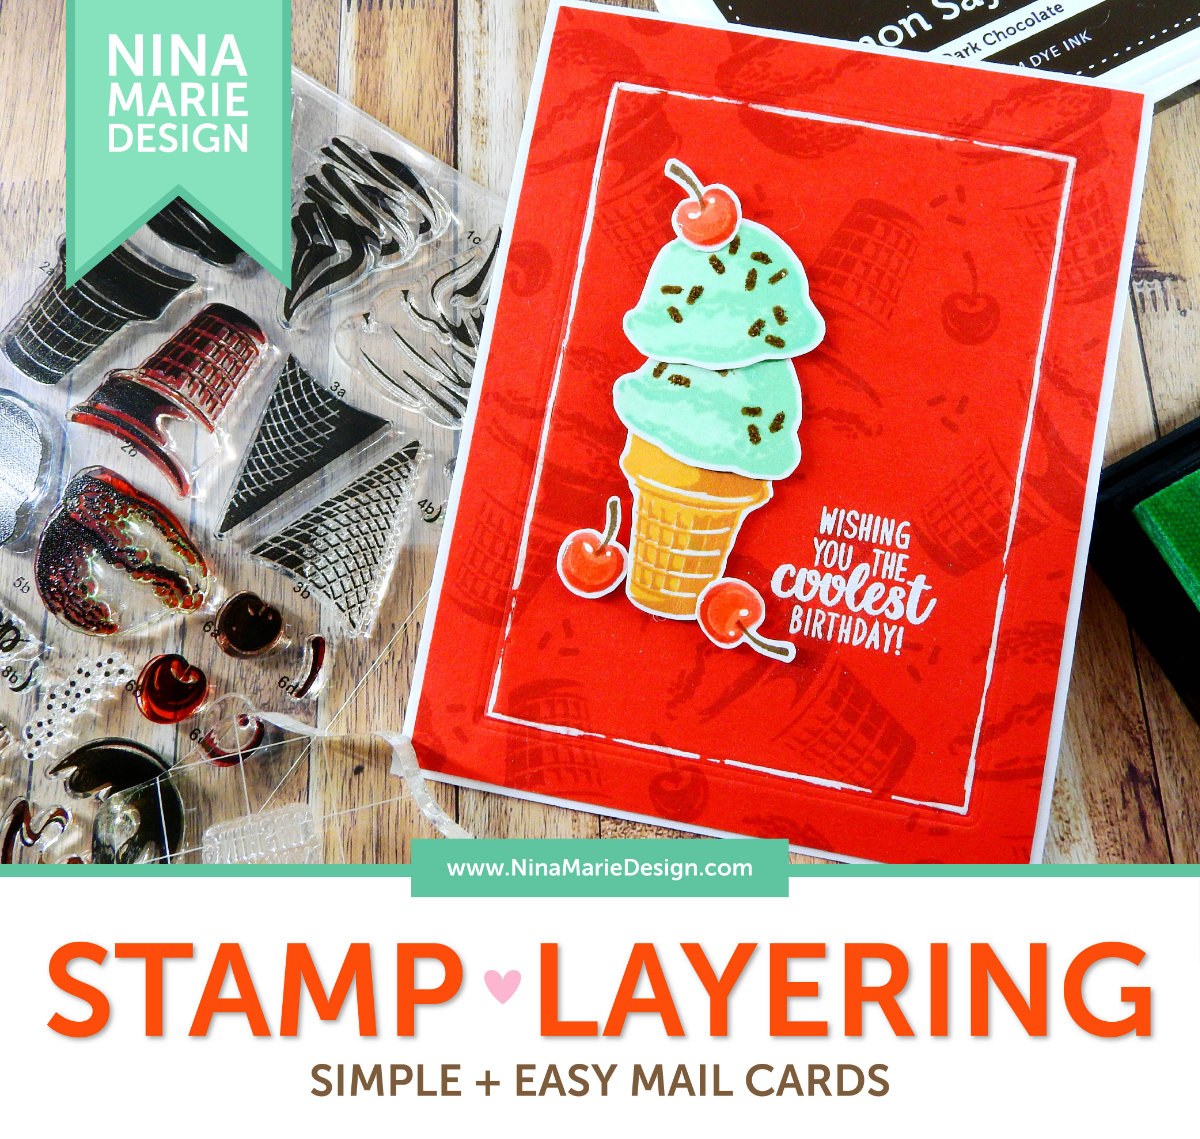 Easy Mail Stamp Layering 2 Ways | Nina-Marie Design